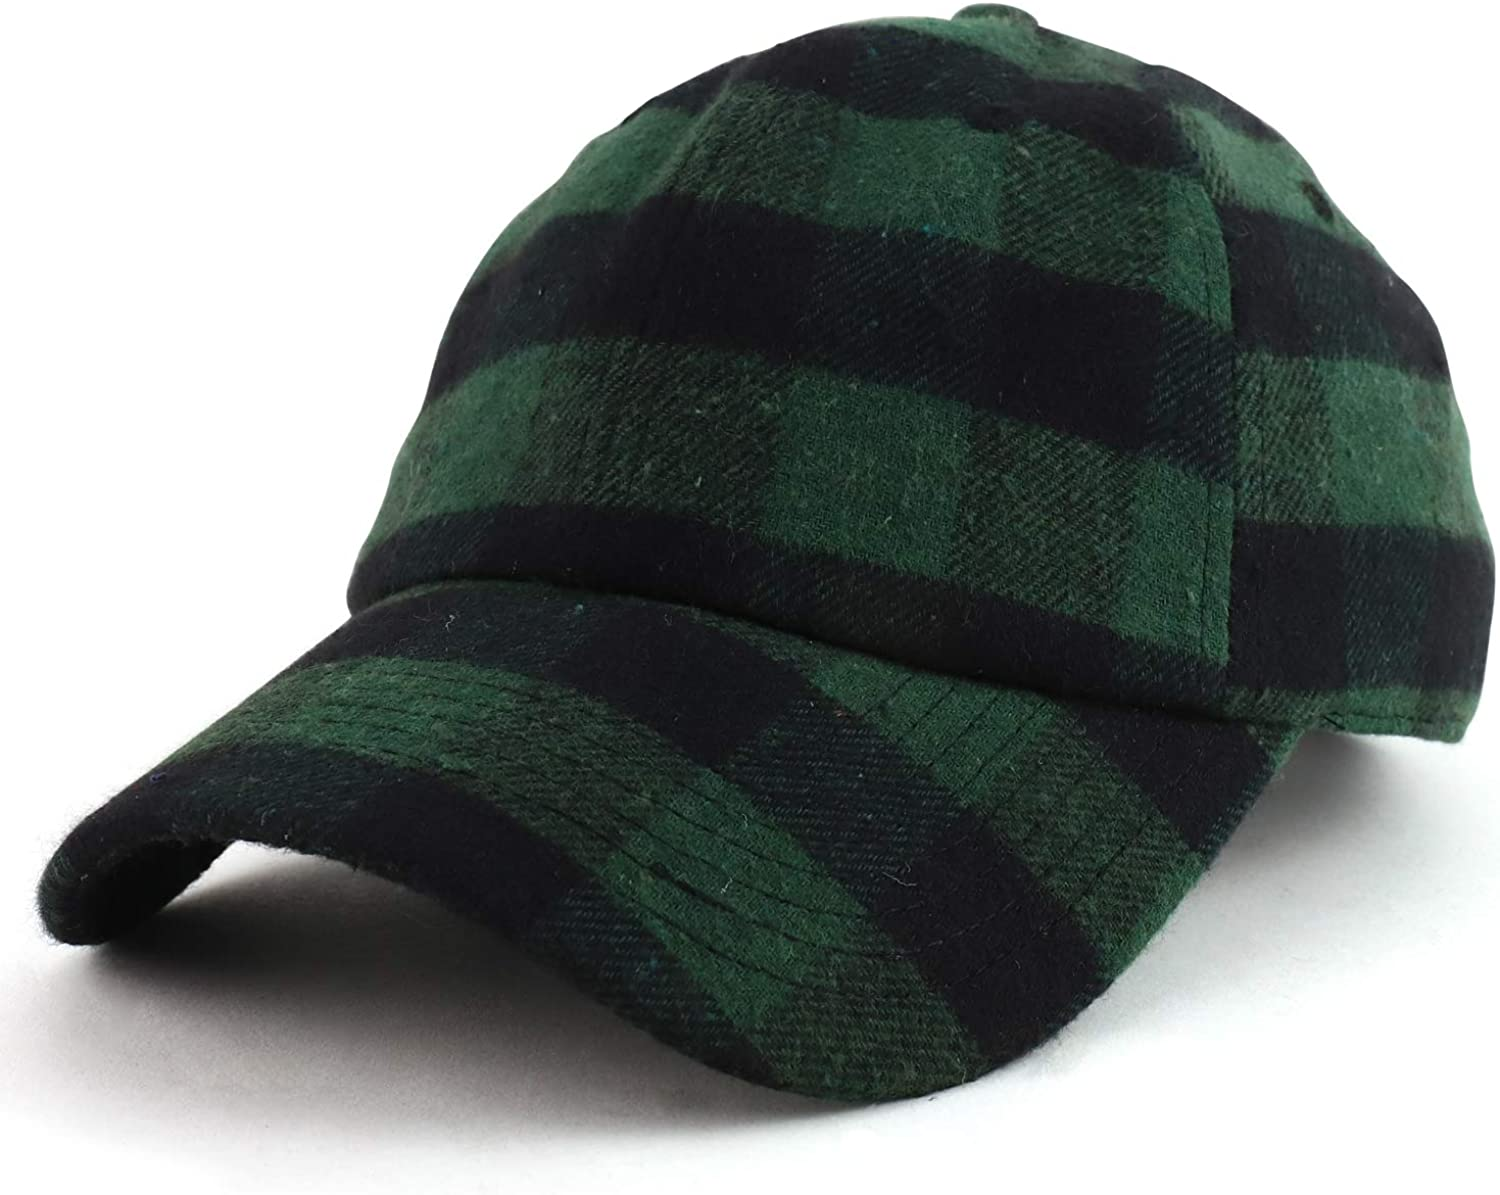 Armycrew Plaid Checkered Structured Adjustable Baseball Cap